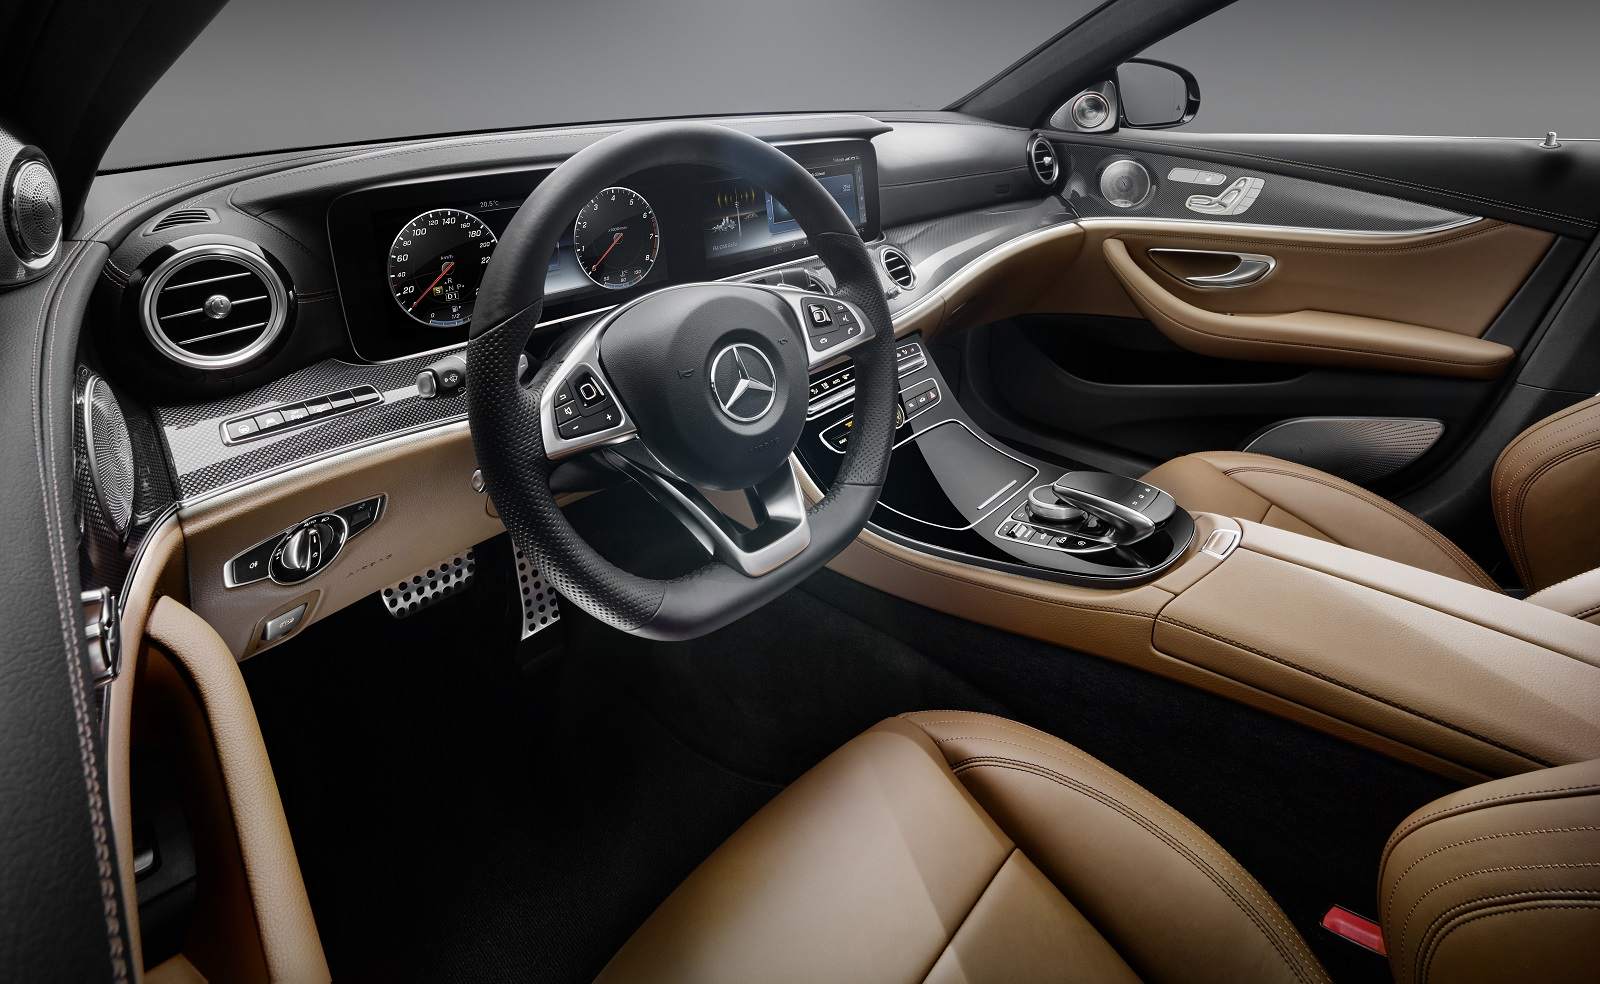 2017 mercedes benz e class interior revealed all glass dash display video. Black Bedroom Furniture Sets. Home Design Ideas